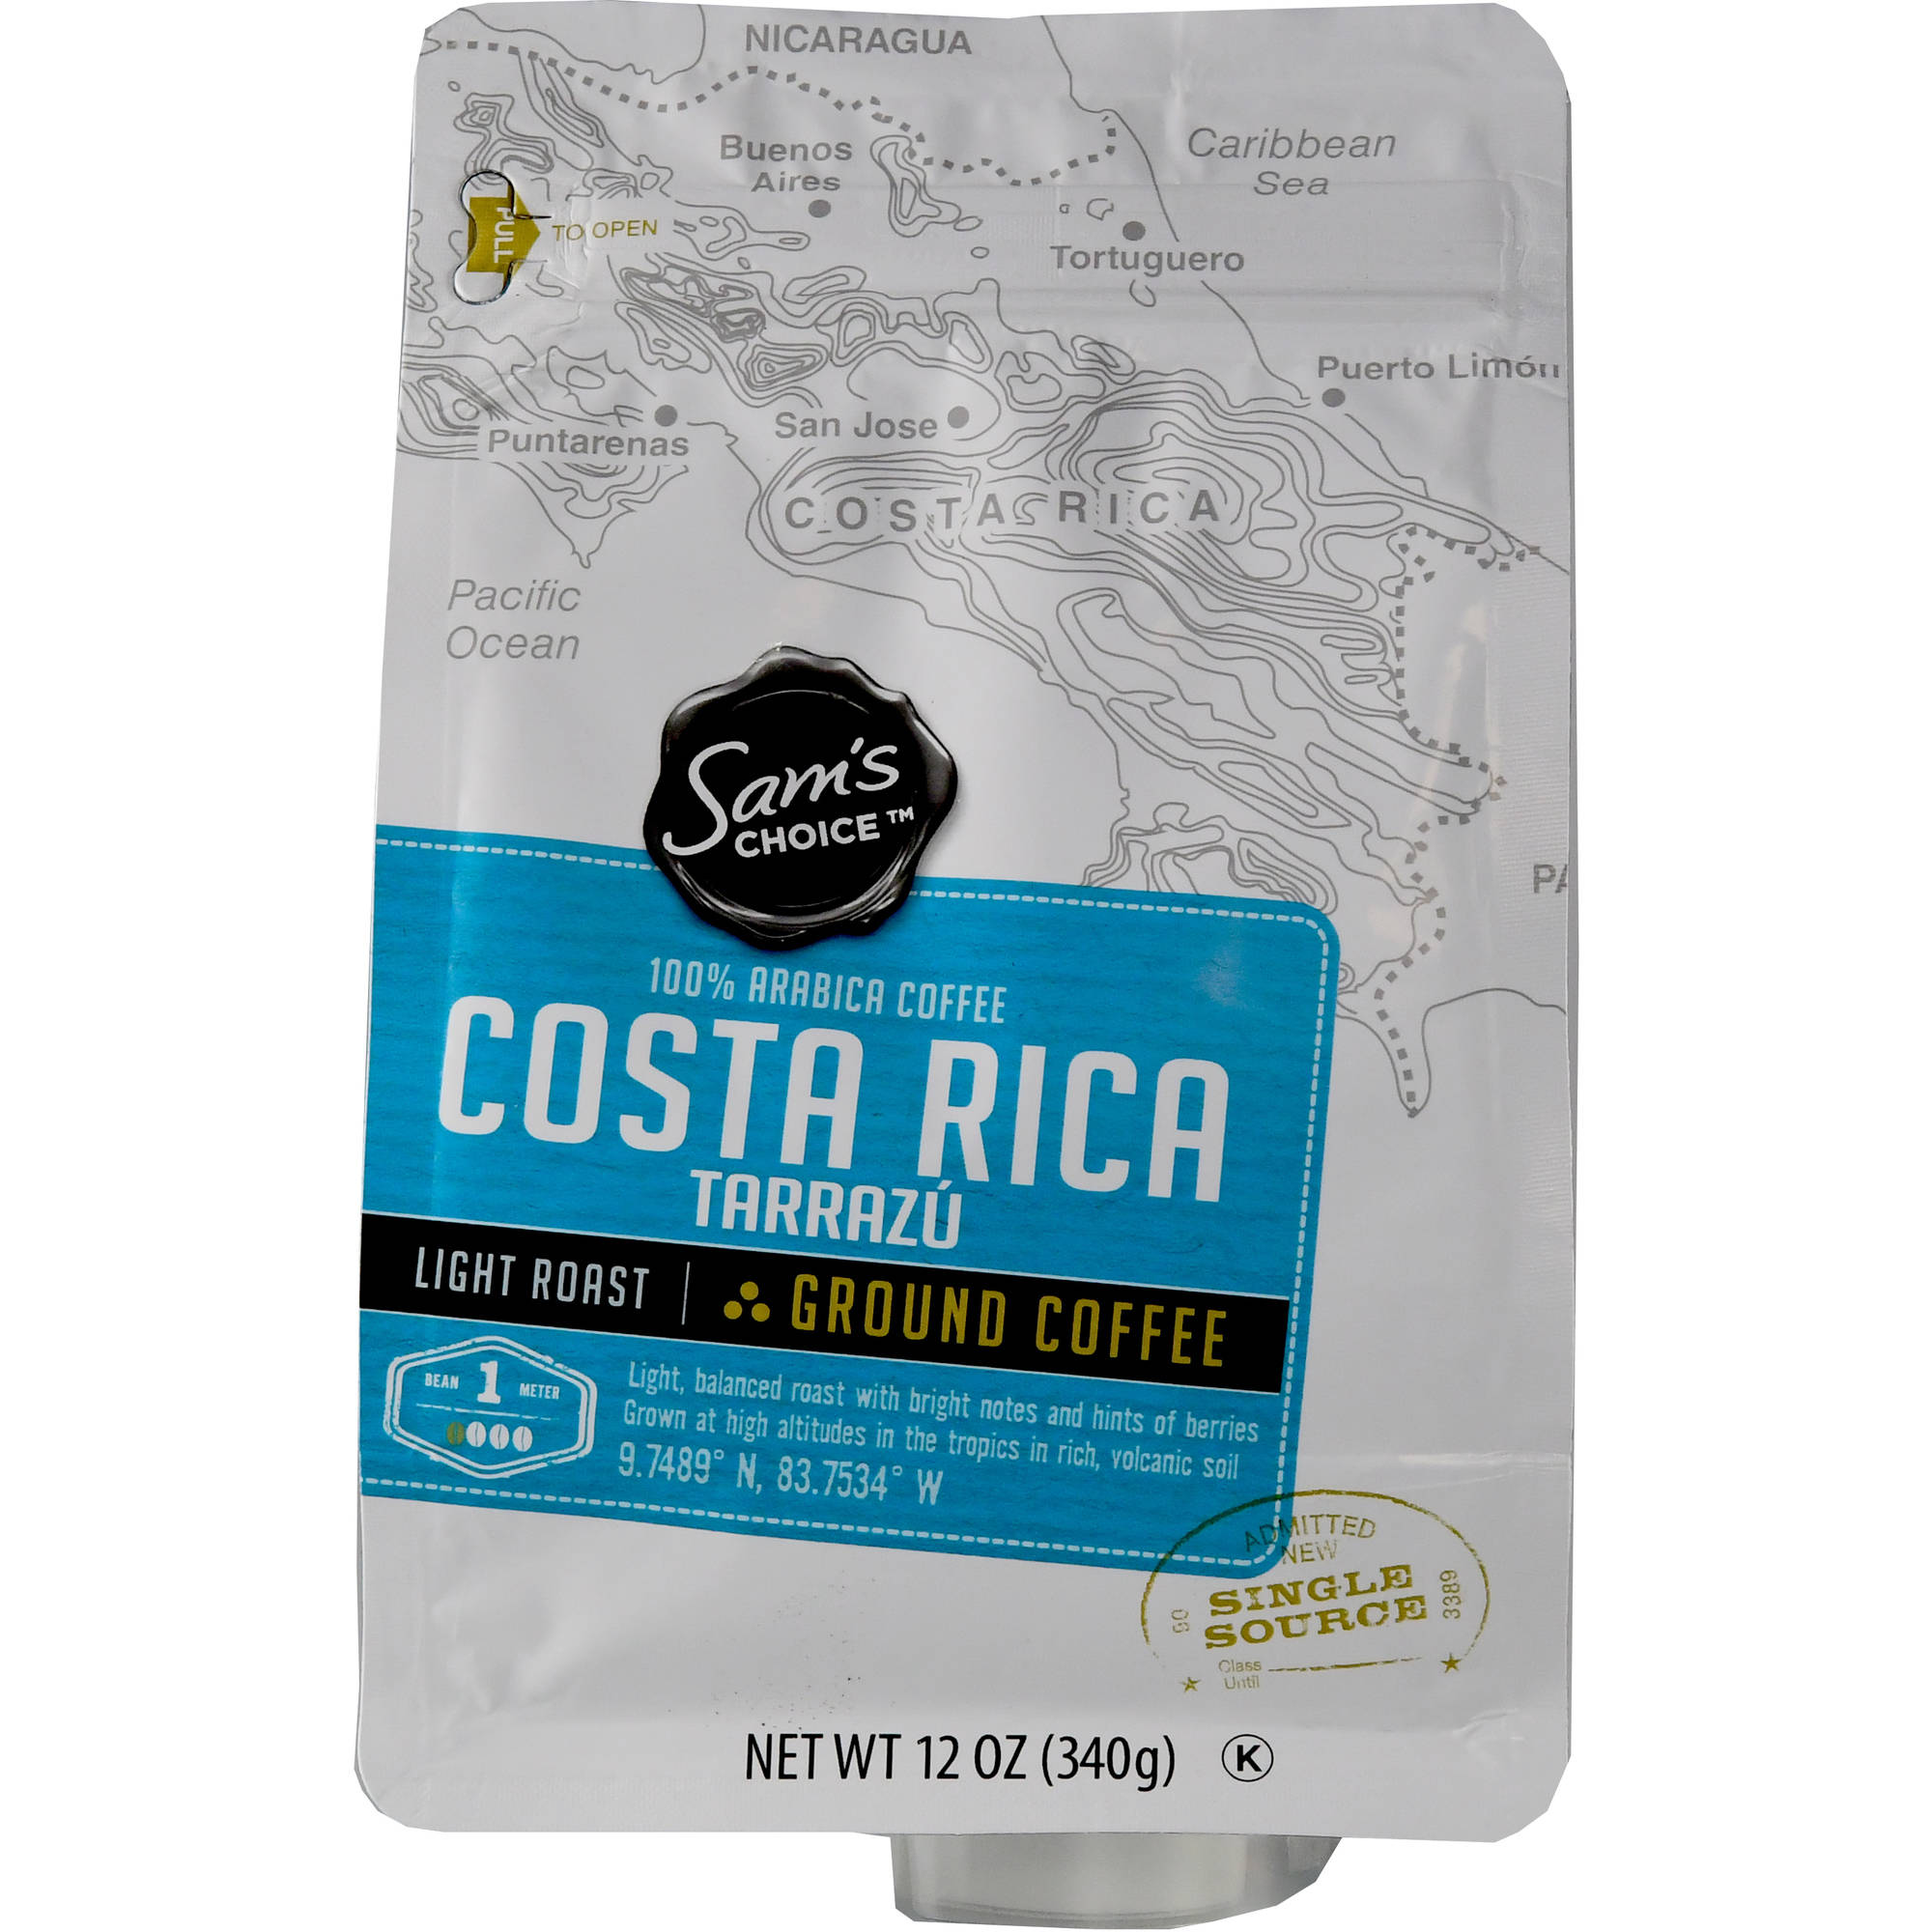 Sam's Choice Costa Rica Tarrazu Ground Coffee, Light Roast, 12 oz